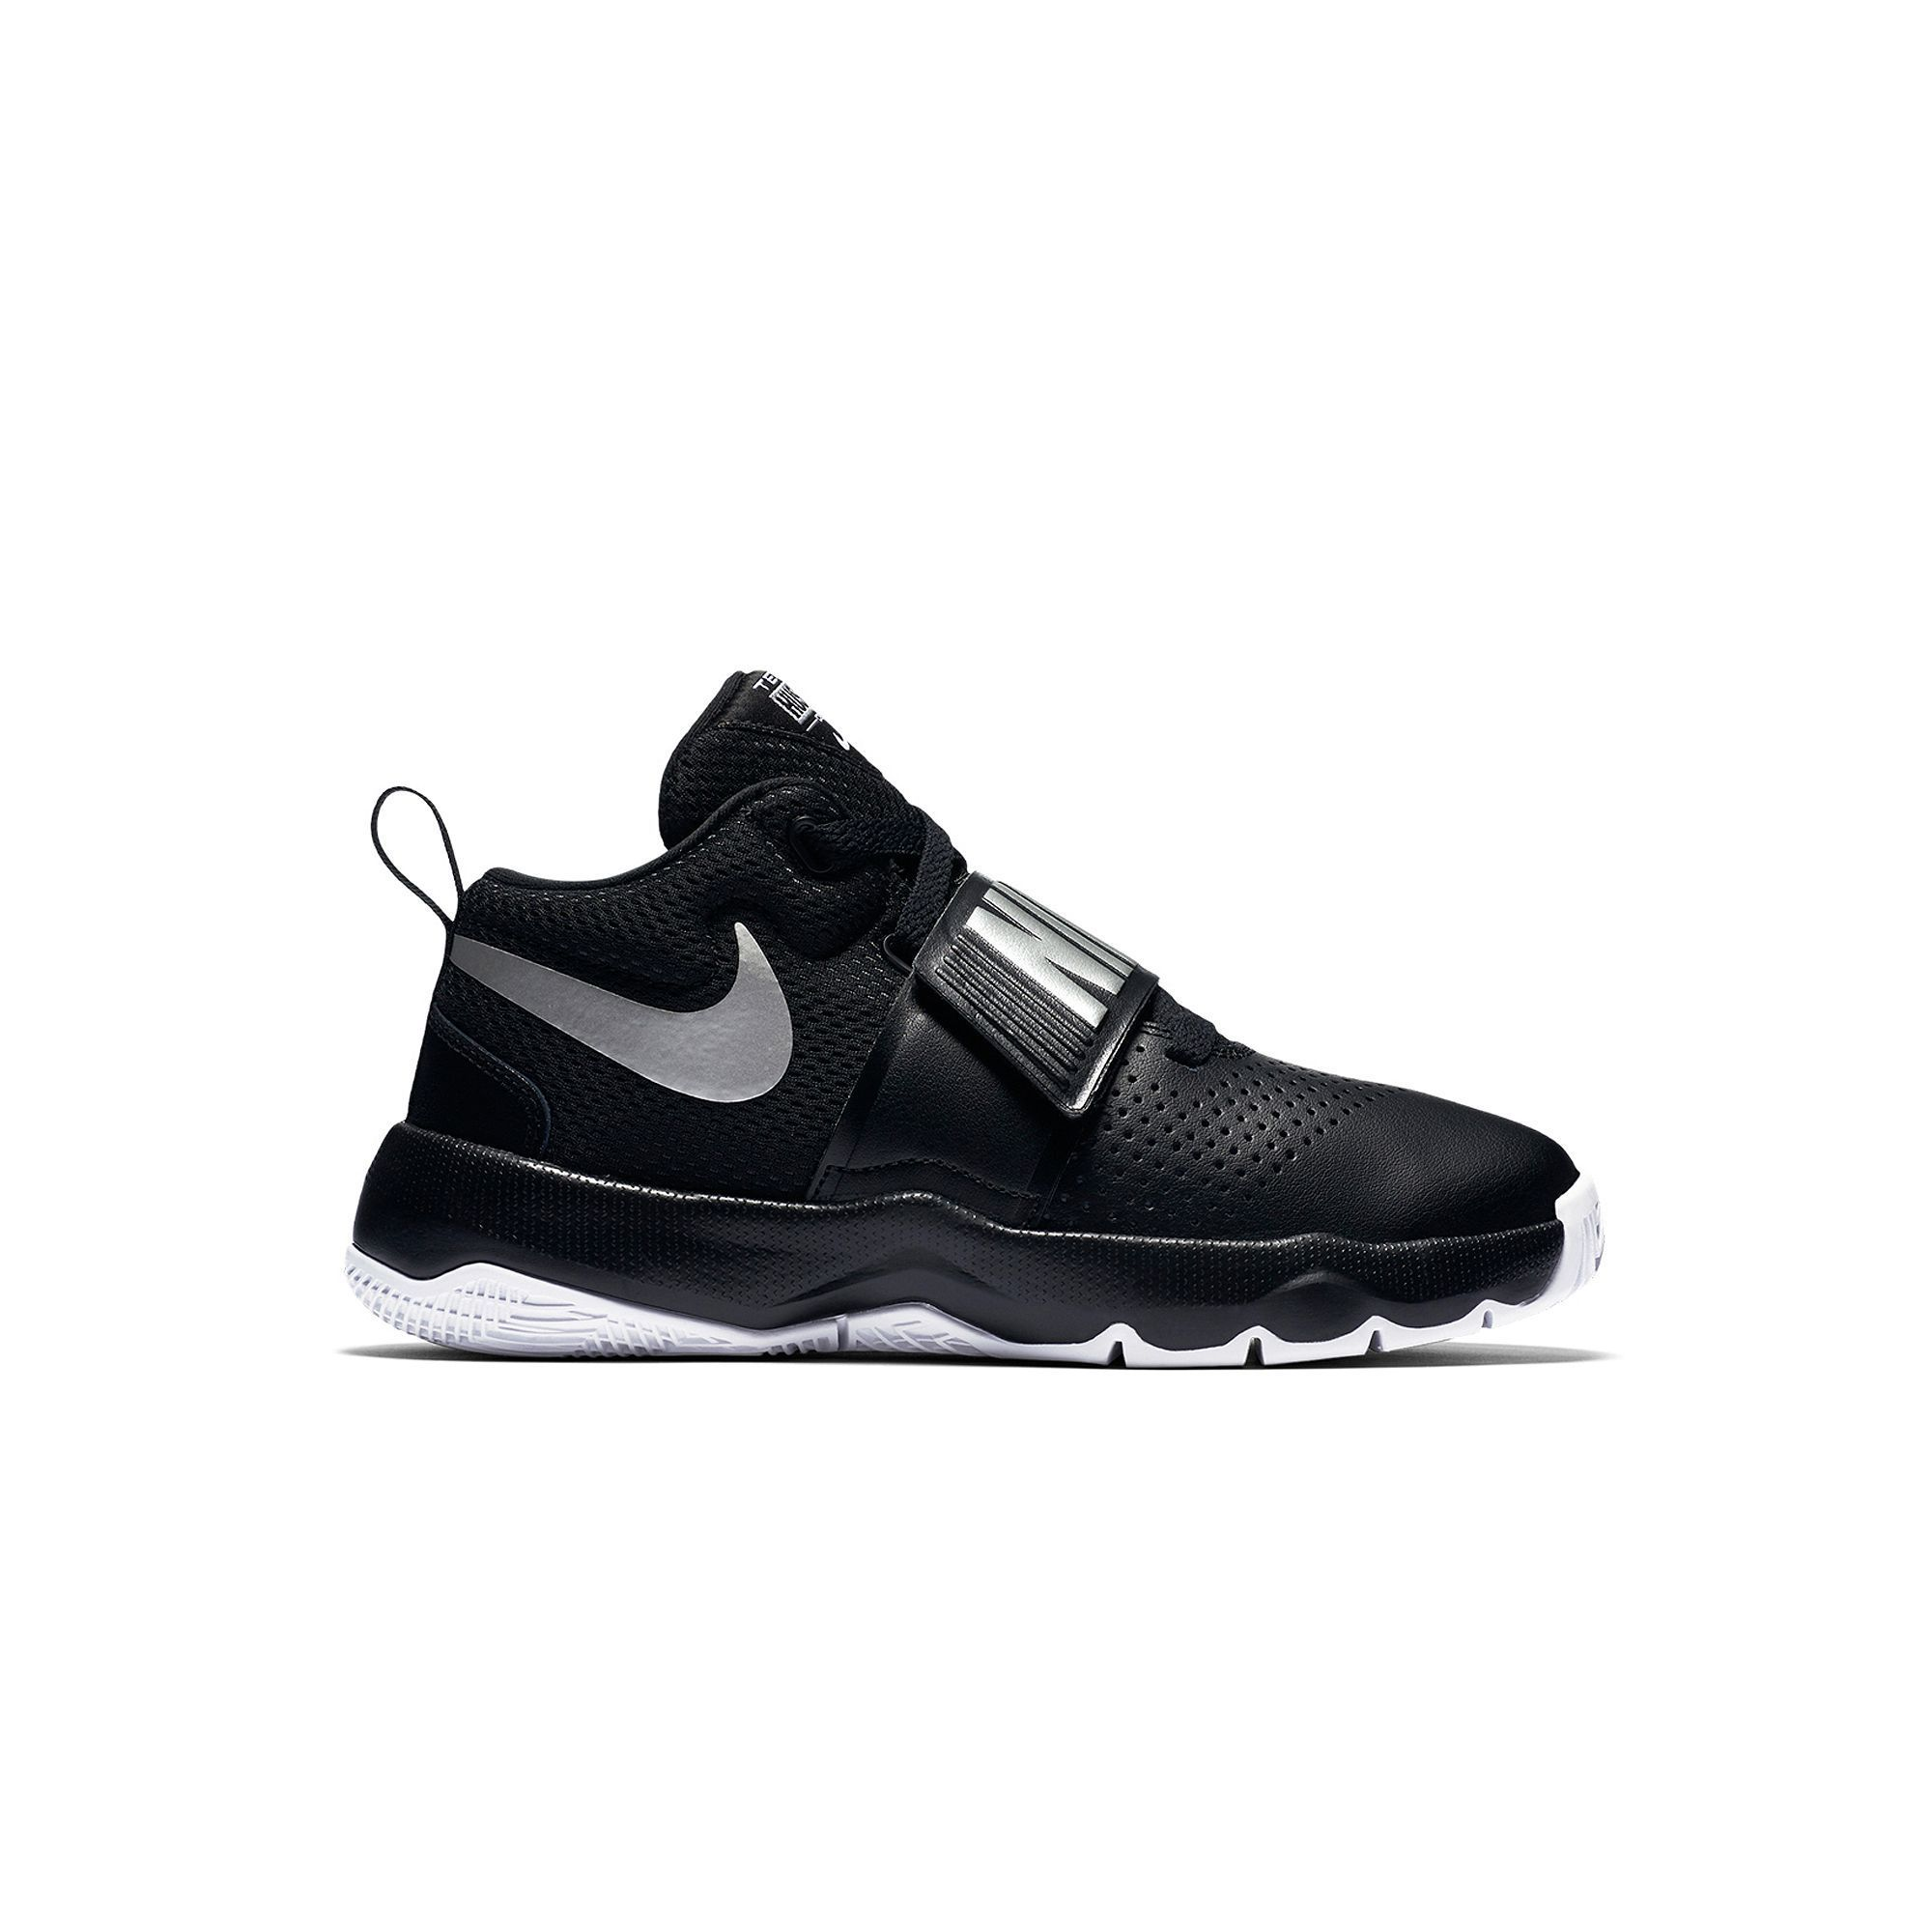 Nike Kinder Basketballschuhe Team Hustle D8 | SportsDirect